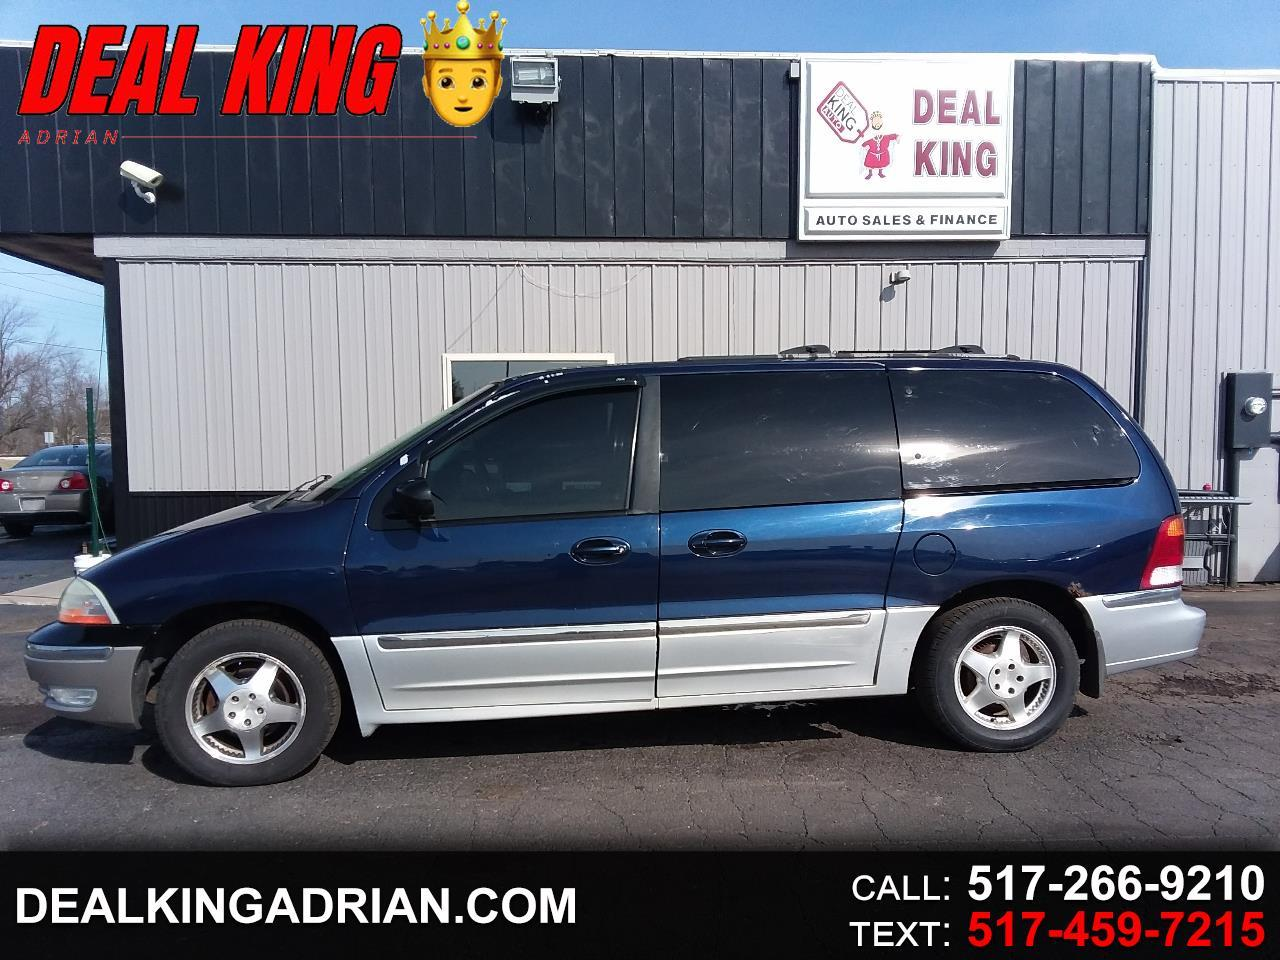 1999 Ford Windstar $795